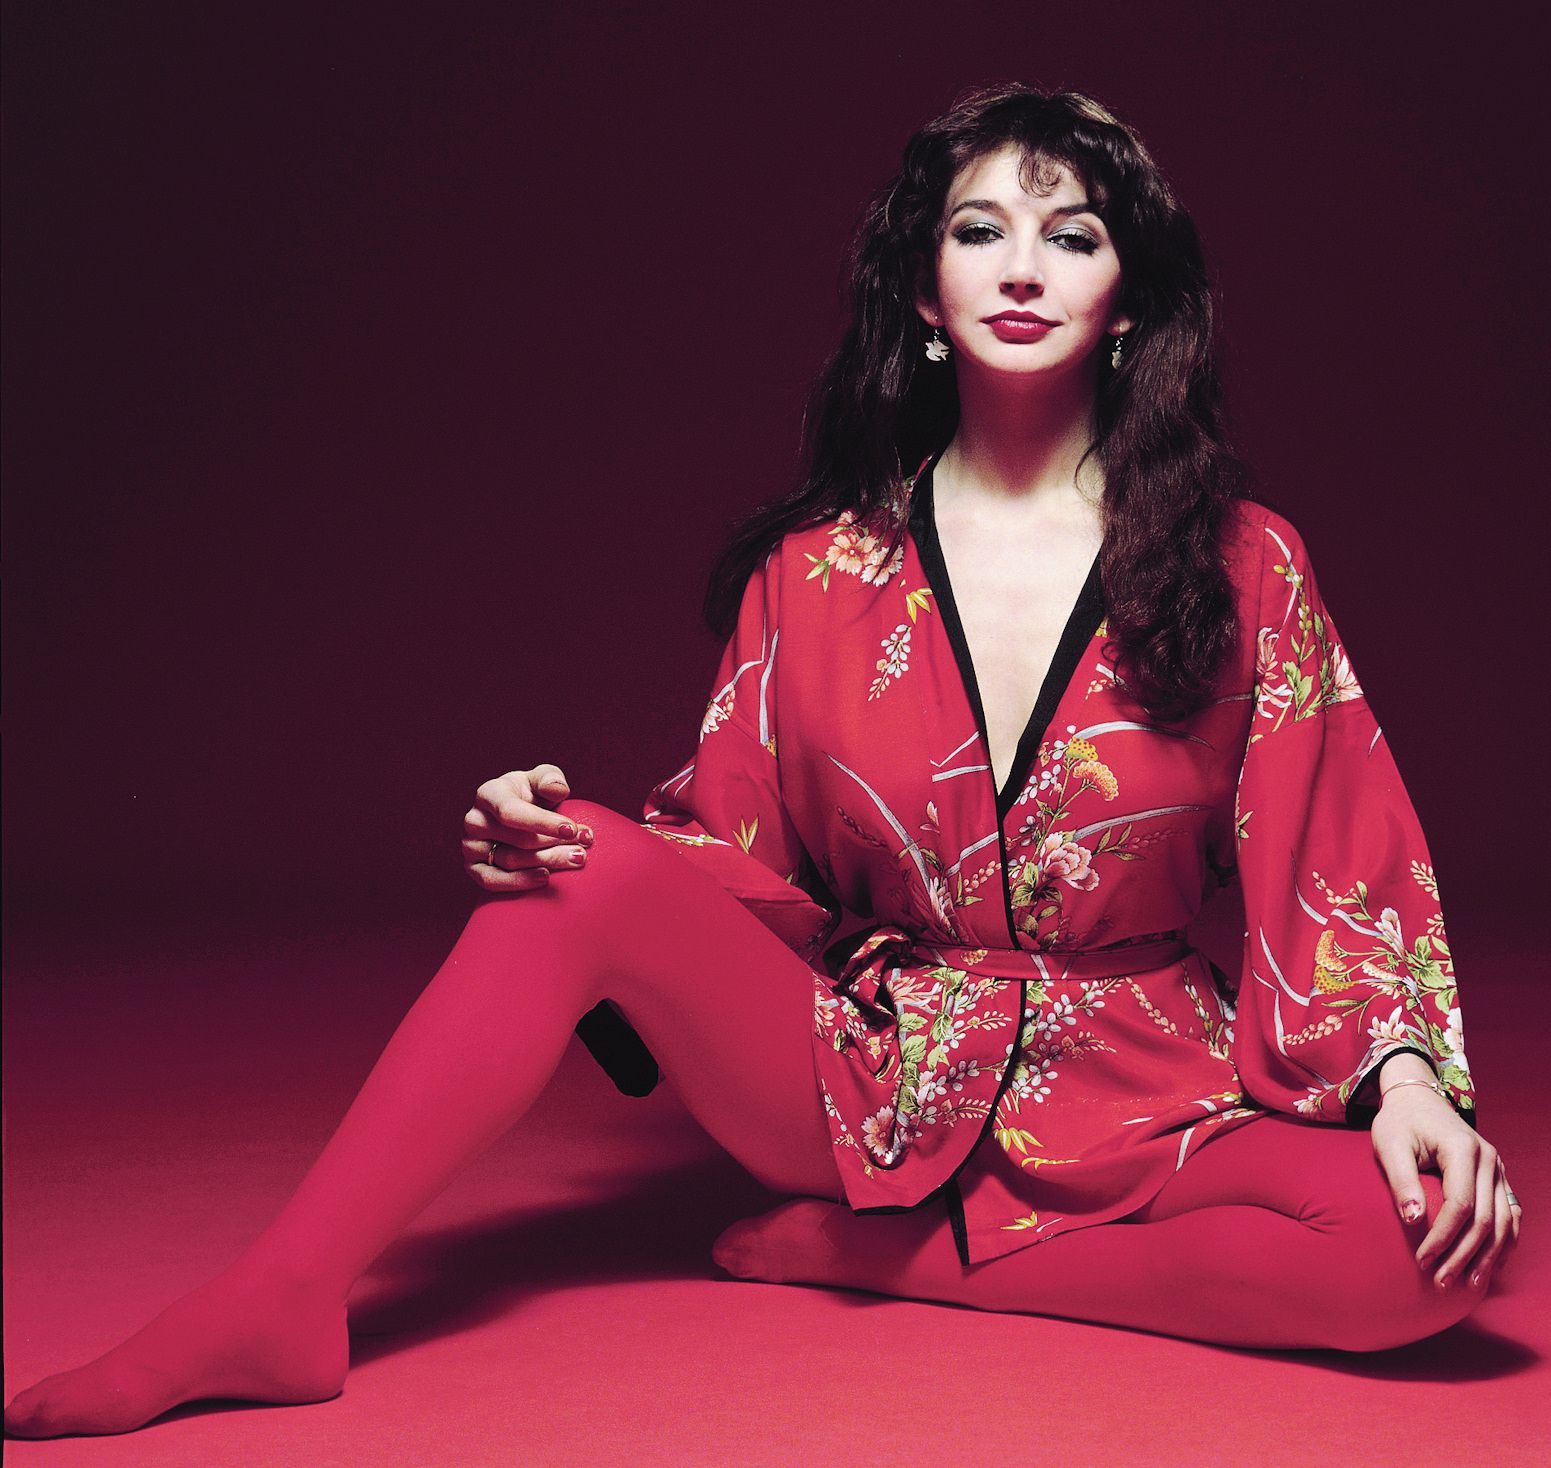 rubberband girl kate bush歌詞